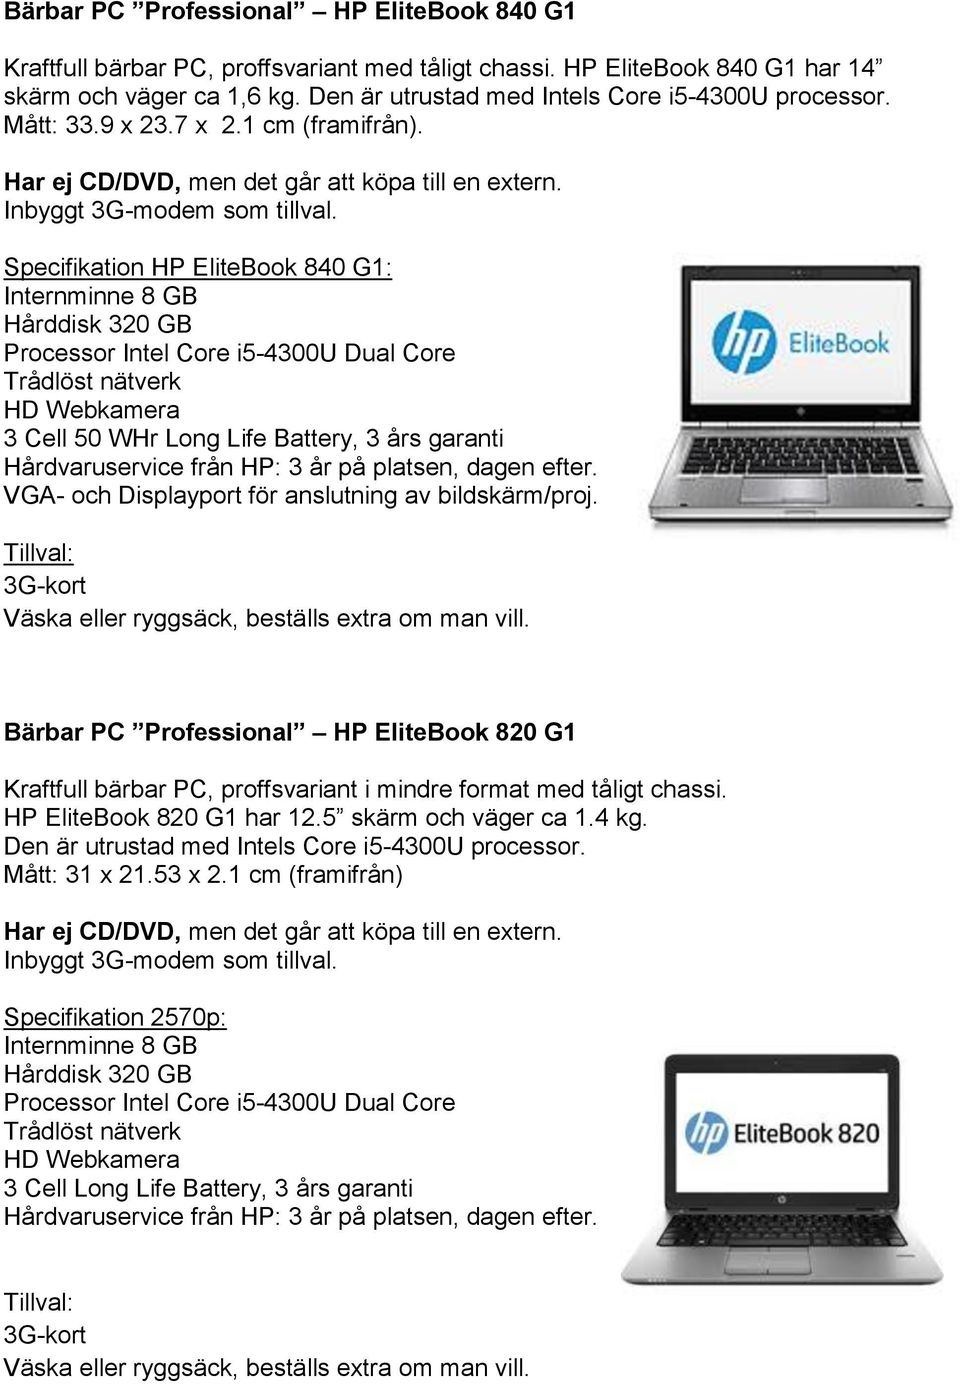 Specifikation HP EliteBook 840 G1: Processor Intel Core i5-4300u Dual Core Trådlöst nätverk HD Webkamera 3 Cell 50 WHr Long Life Battery, 3 års garanti VGA- och Displayport för anslutning av